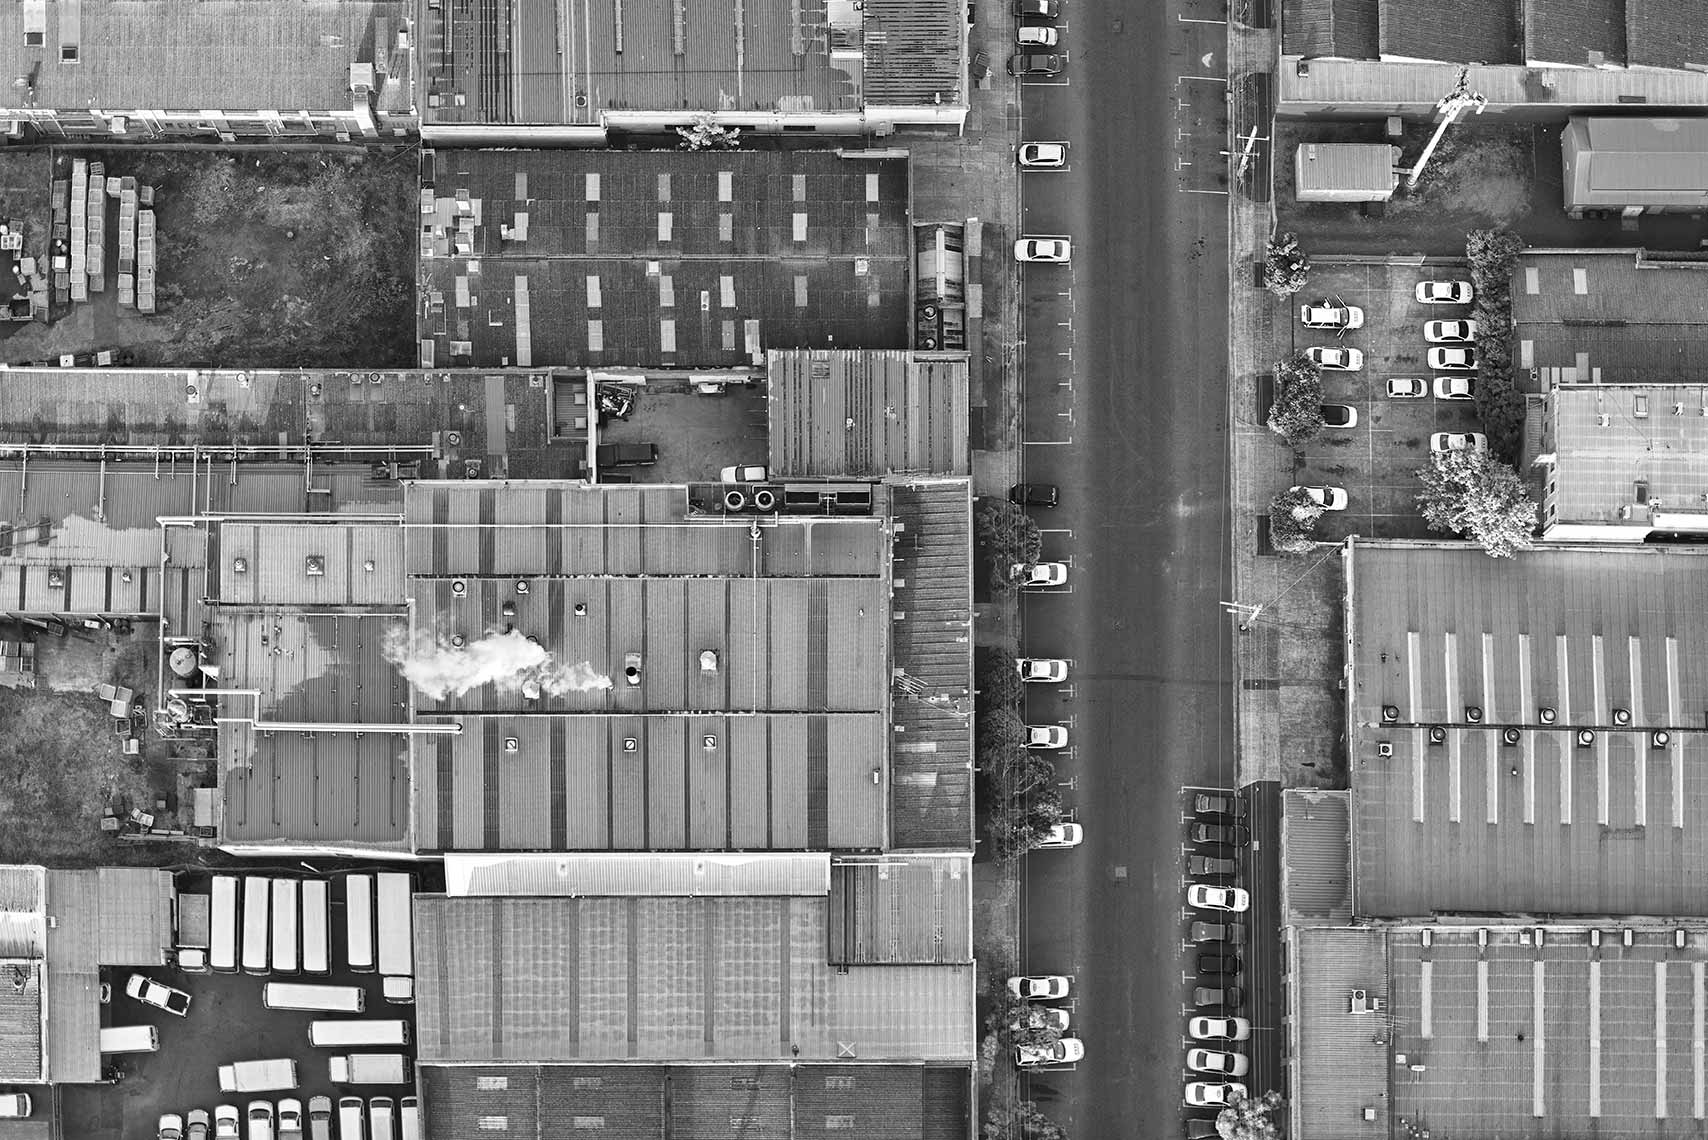 Factories Aerial Landscape Architecture Melbourne Hot Air Balloon